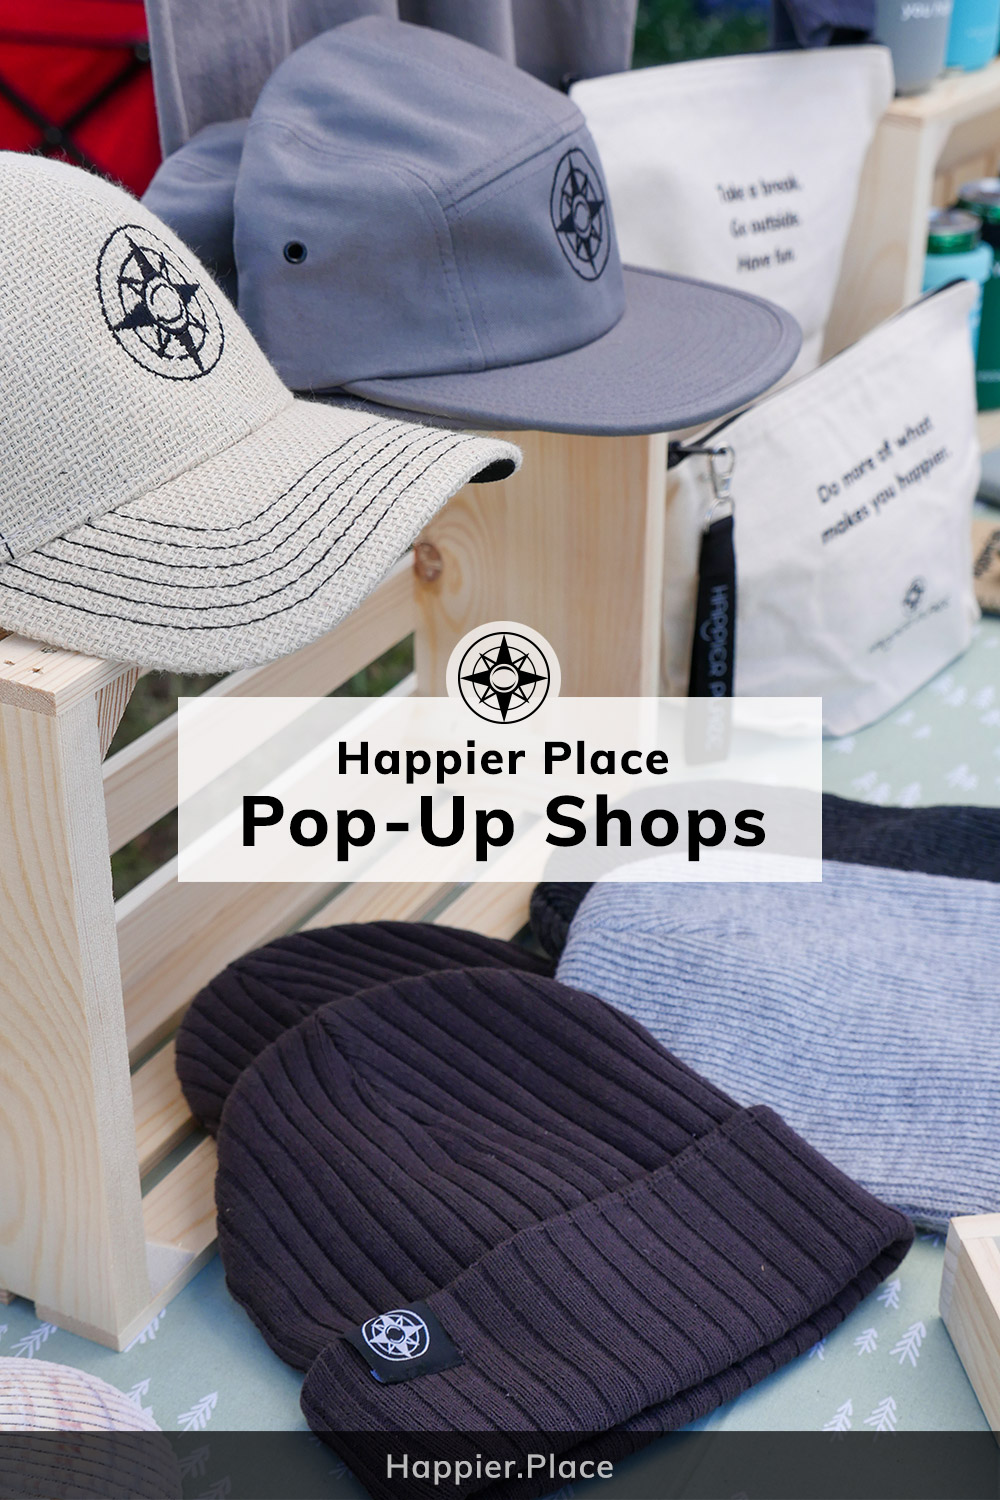 Happier Place Pop-up Shop featuring hats, bags and all the outdoor products to make your happy place better